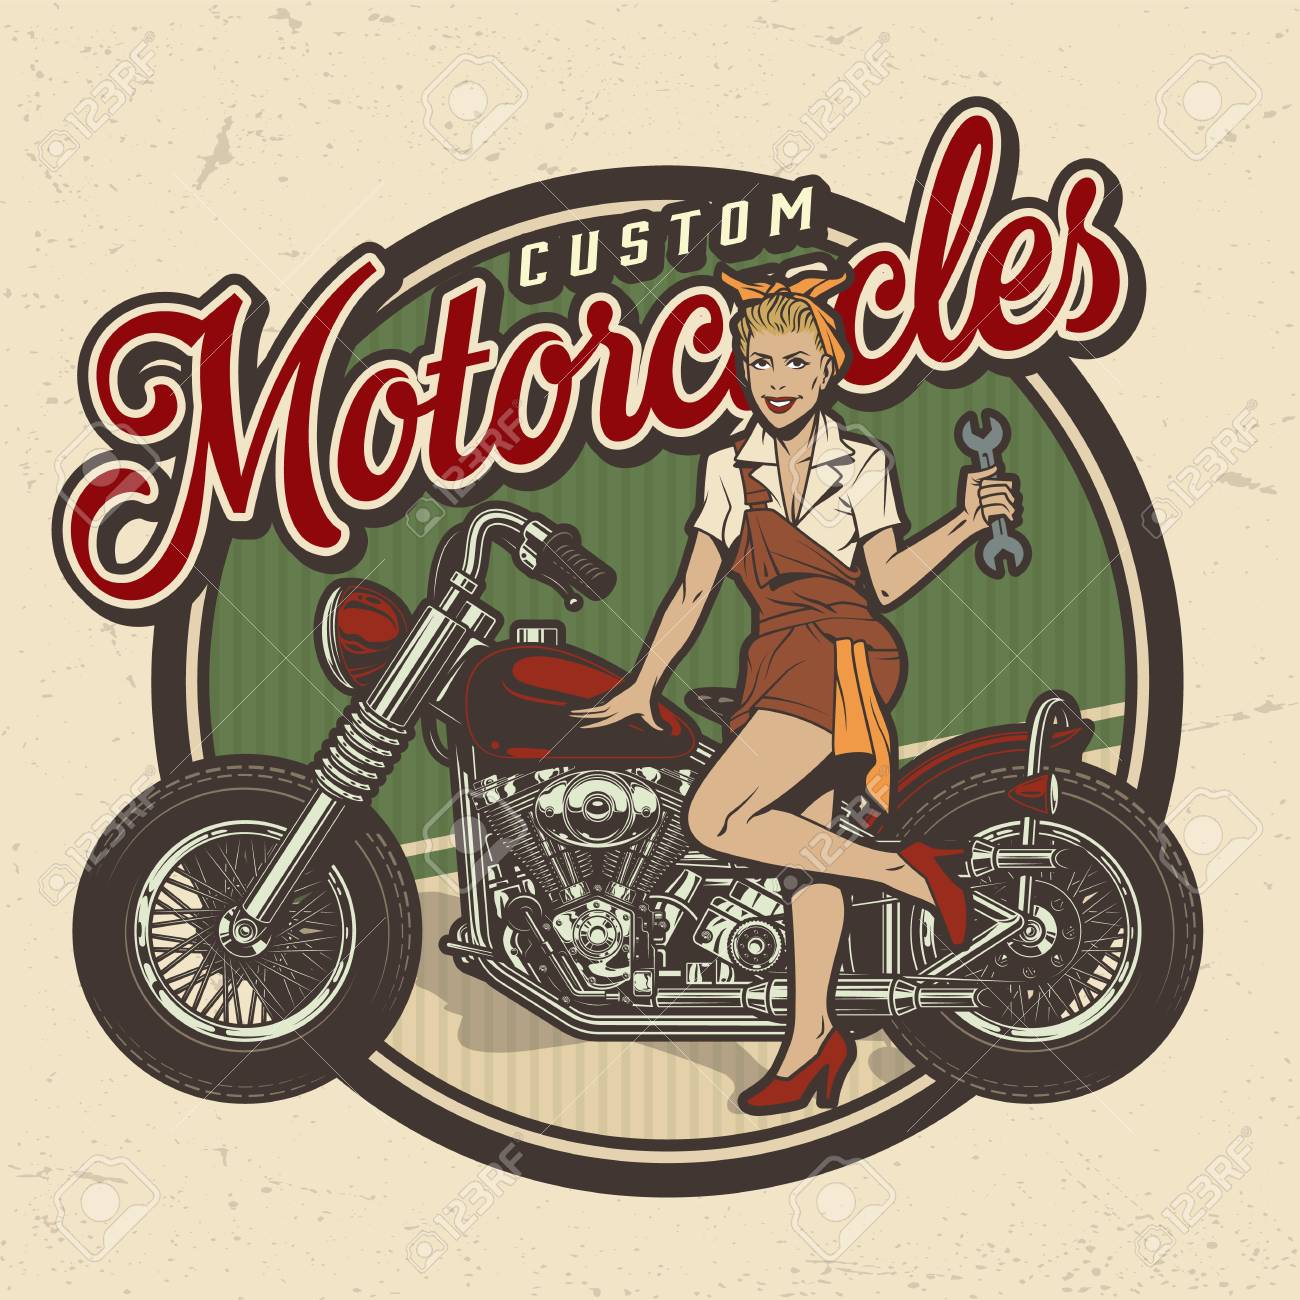 Vintage colorful motorcycle repair service logo with pin up pretty